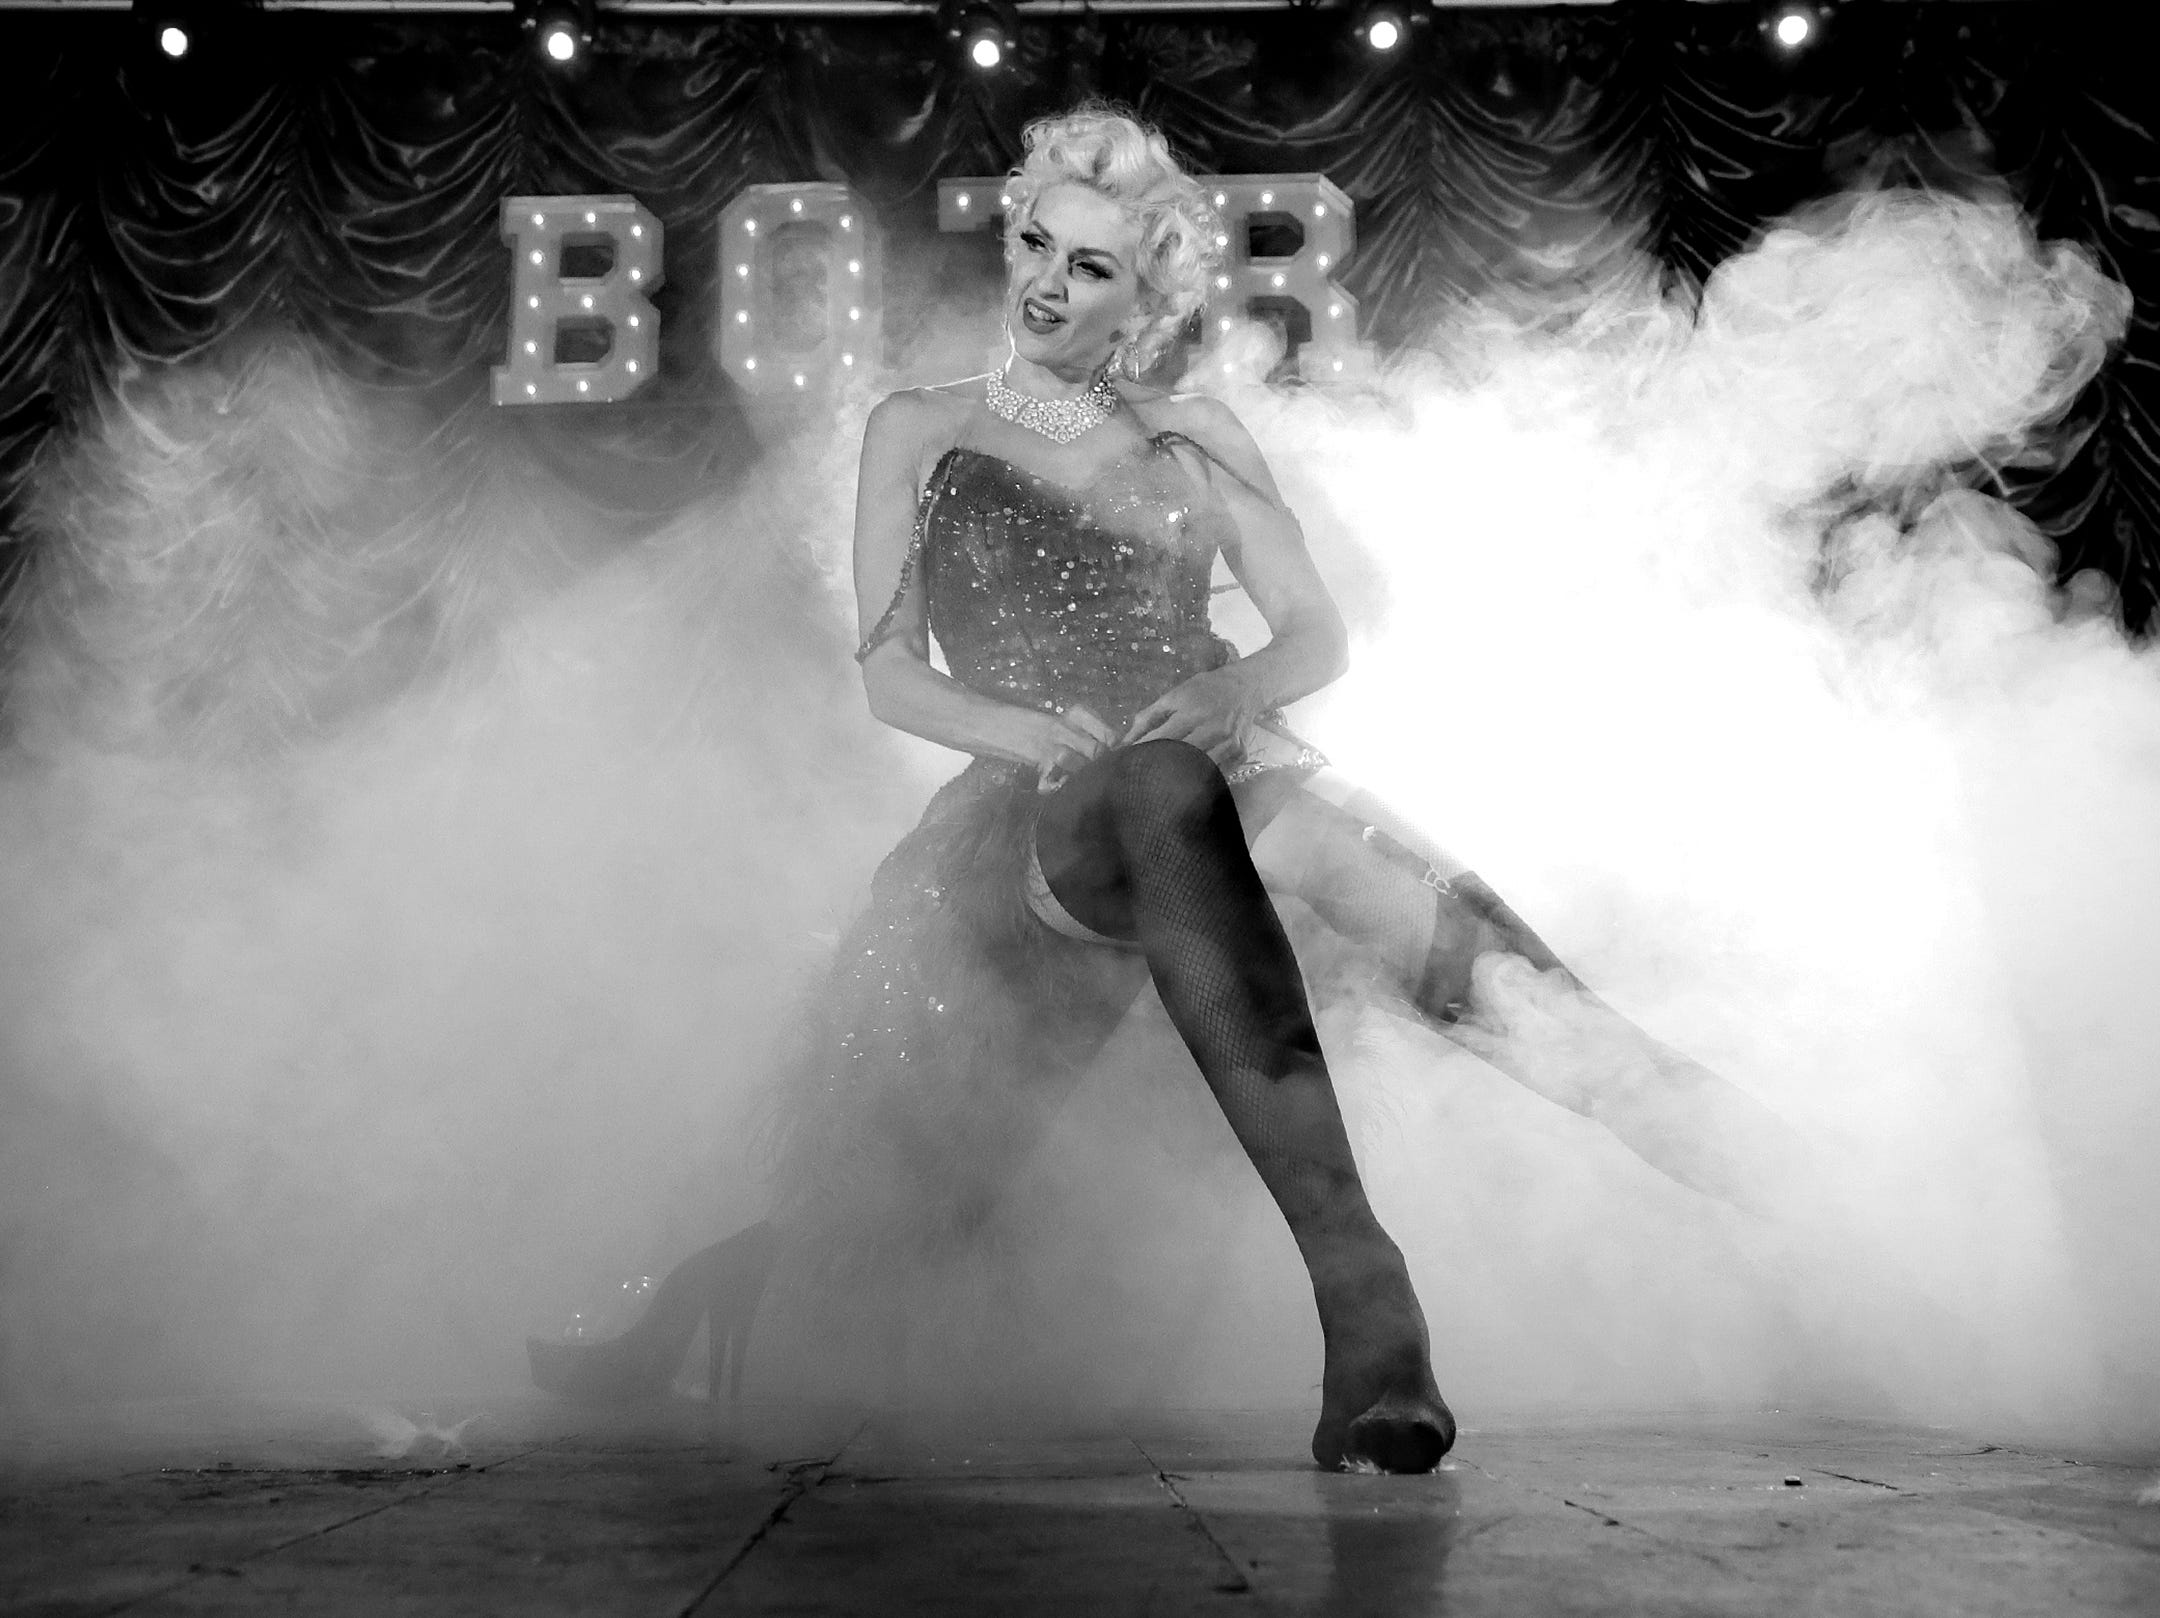 Burlesque on the Rio took over the stage at Touch Bar in east El Paso recently bringing beauty, laughs and art to the borderland region. The show featured well-know burlesque performer Kitten De Ville from Los Angeles. The next show is May 4 at Touch Bar.